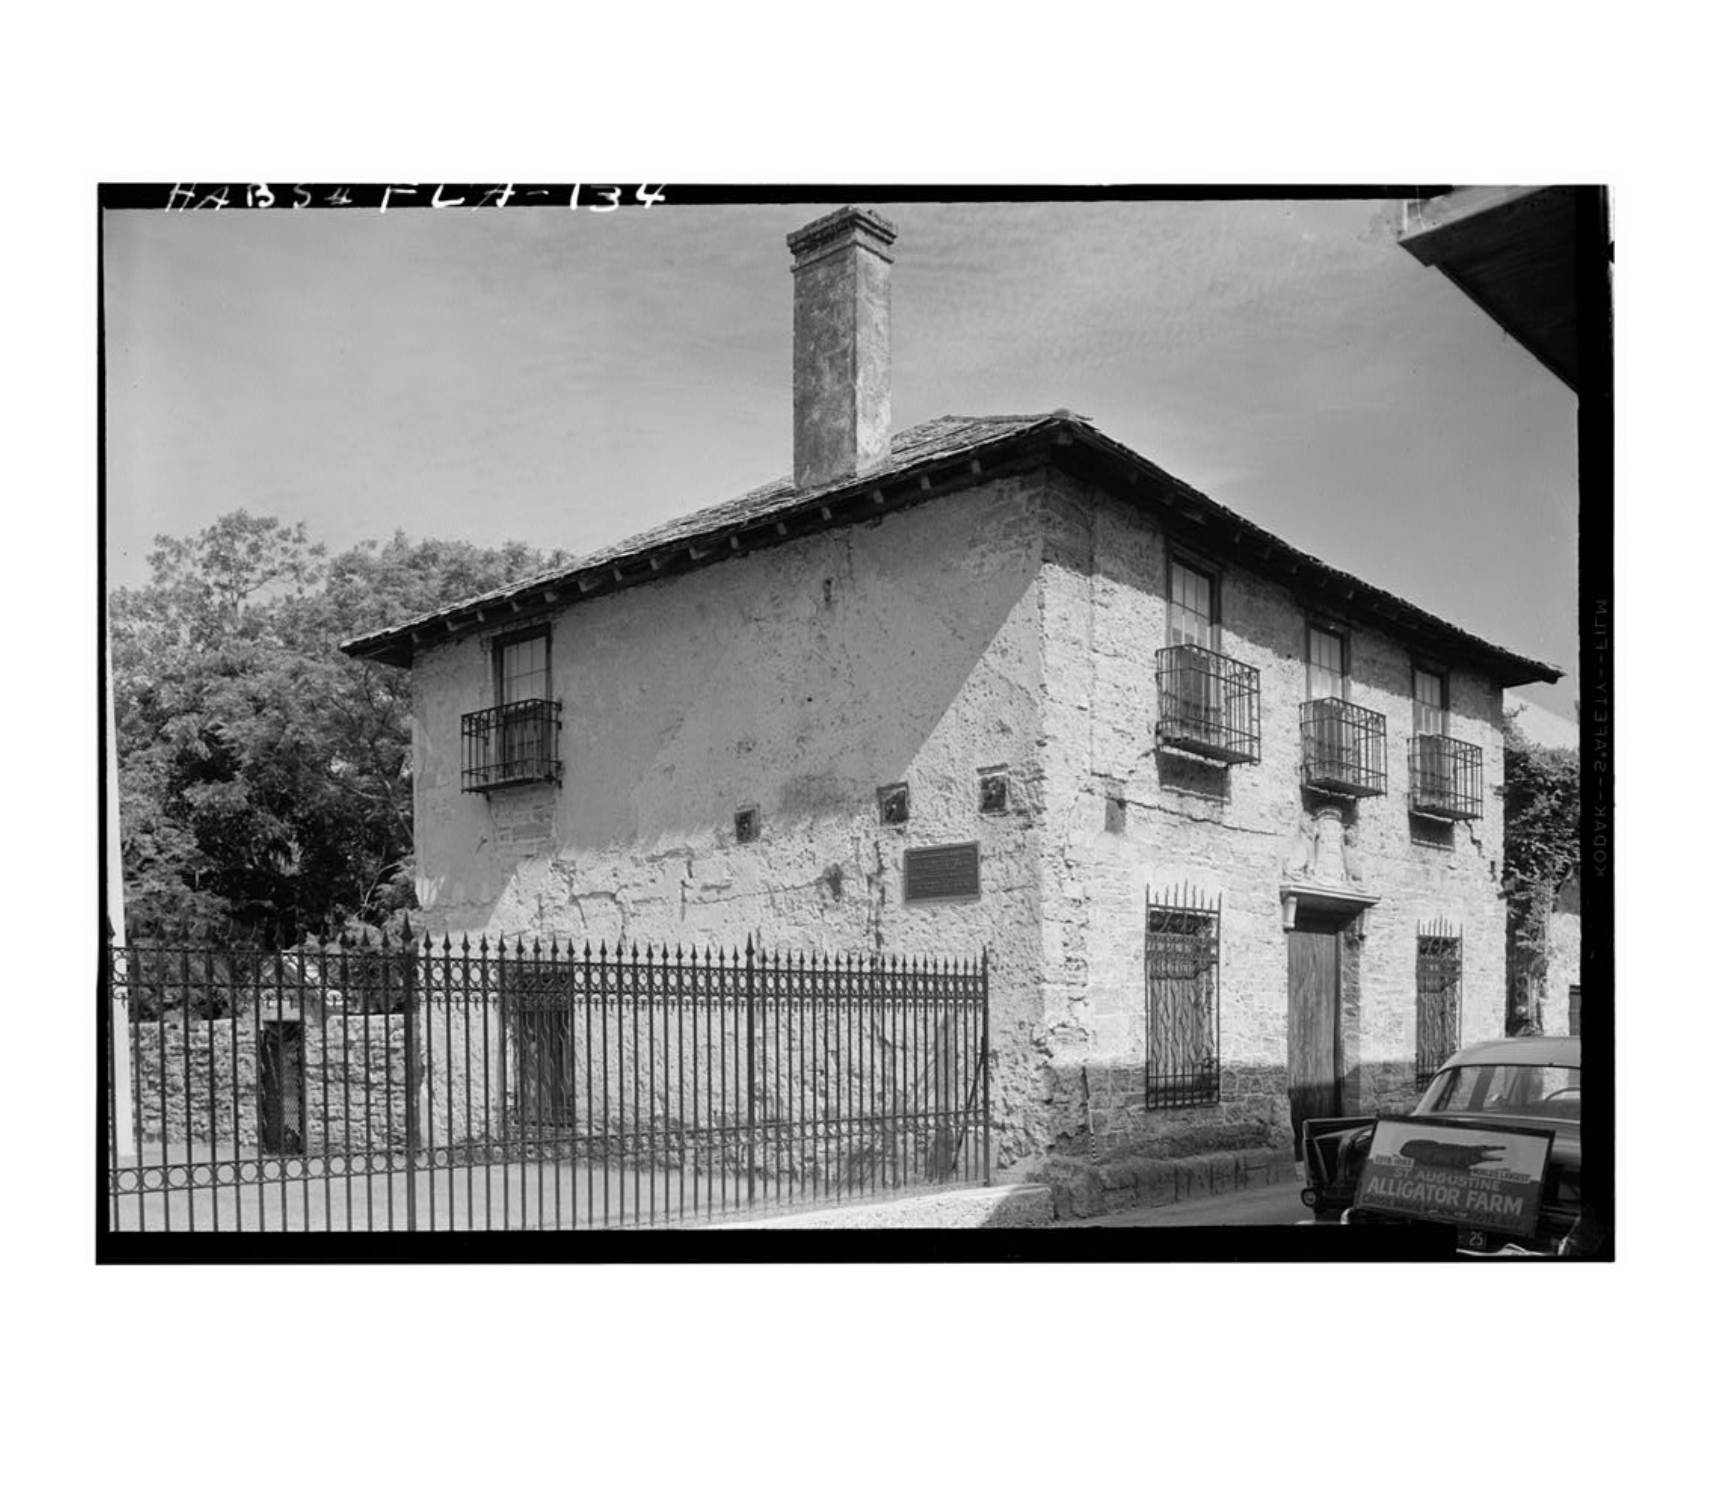 Historic American Buildings Survey Prime A. Beaudoin, Photographer August 1961. Credit: Library of Congress